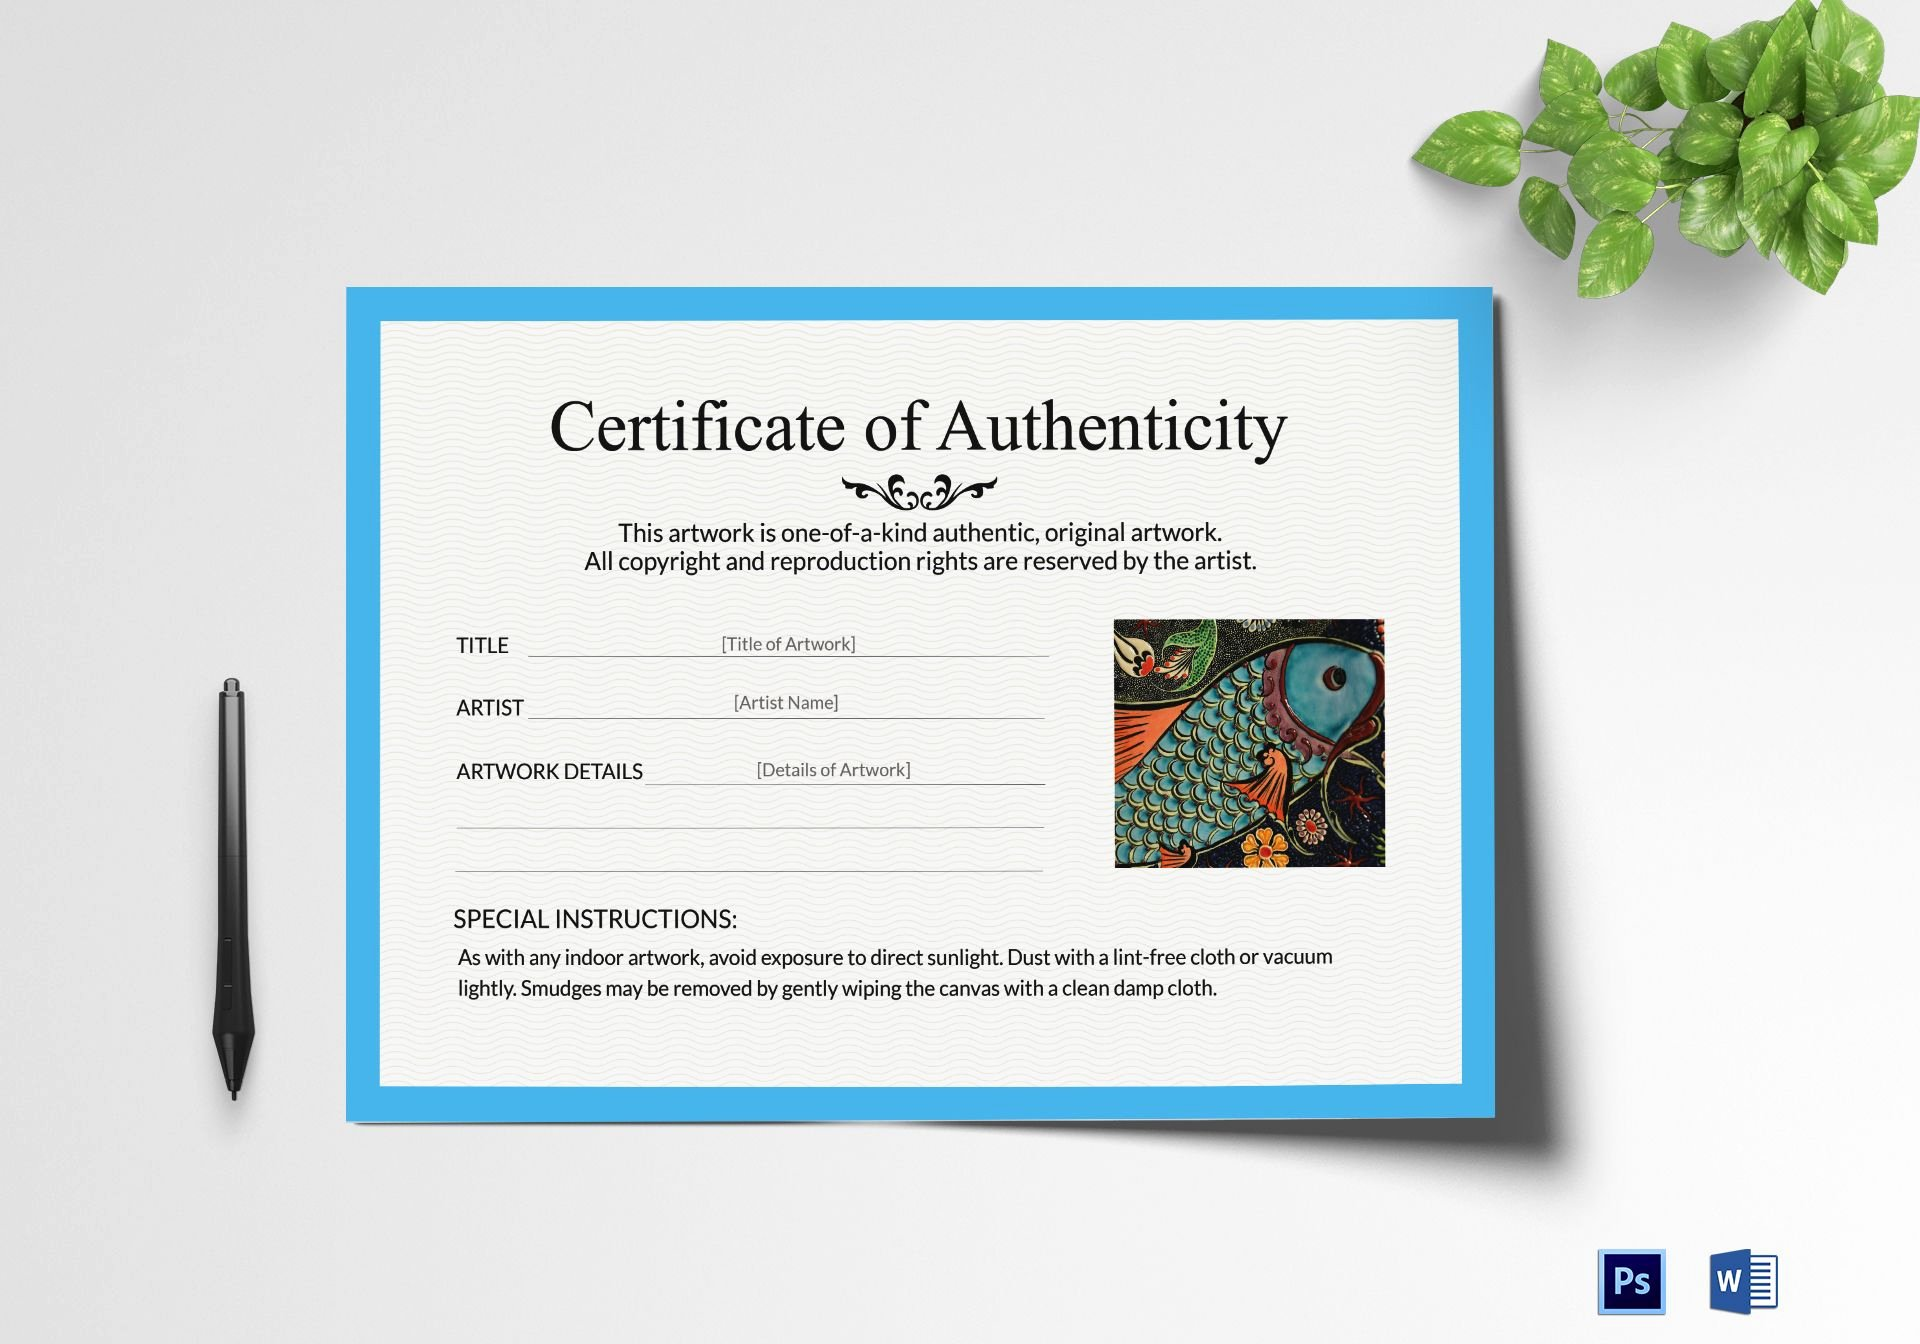 Certificate Of Authenticity Sports Memorabilia Template Unique Artwork Authenticity Certificate Design Template In Psd Word